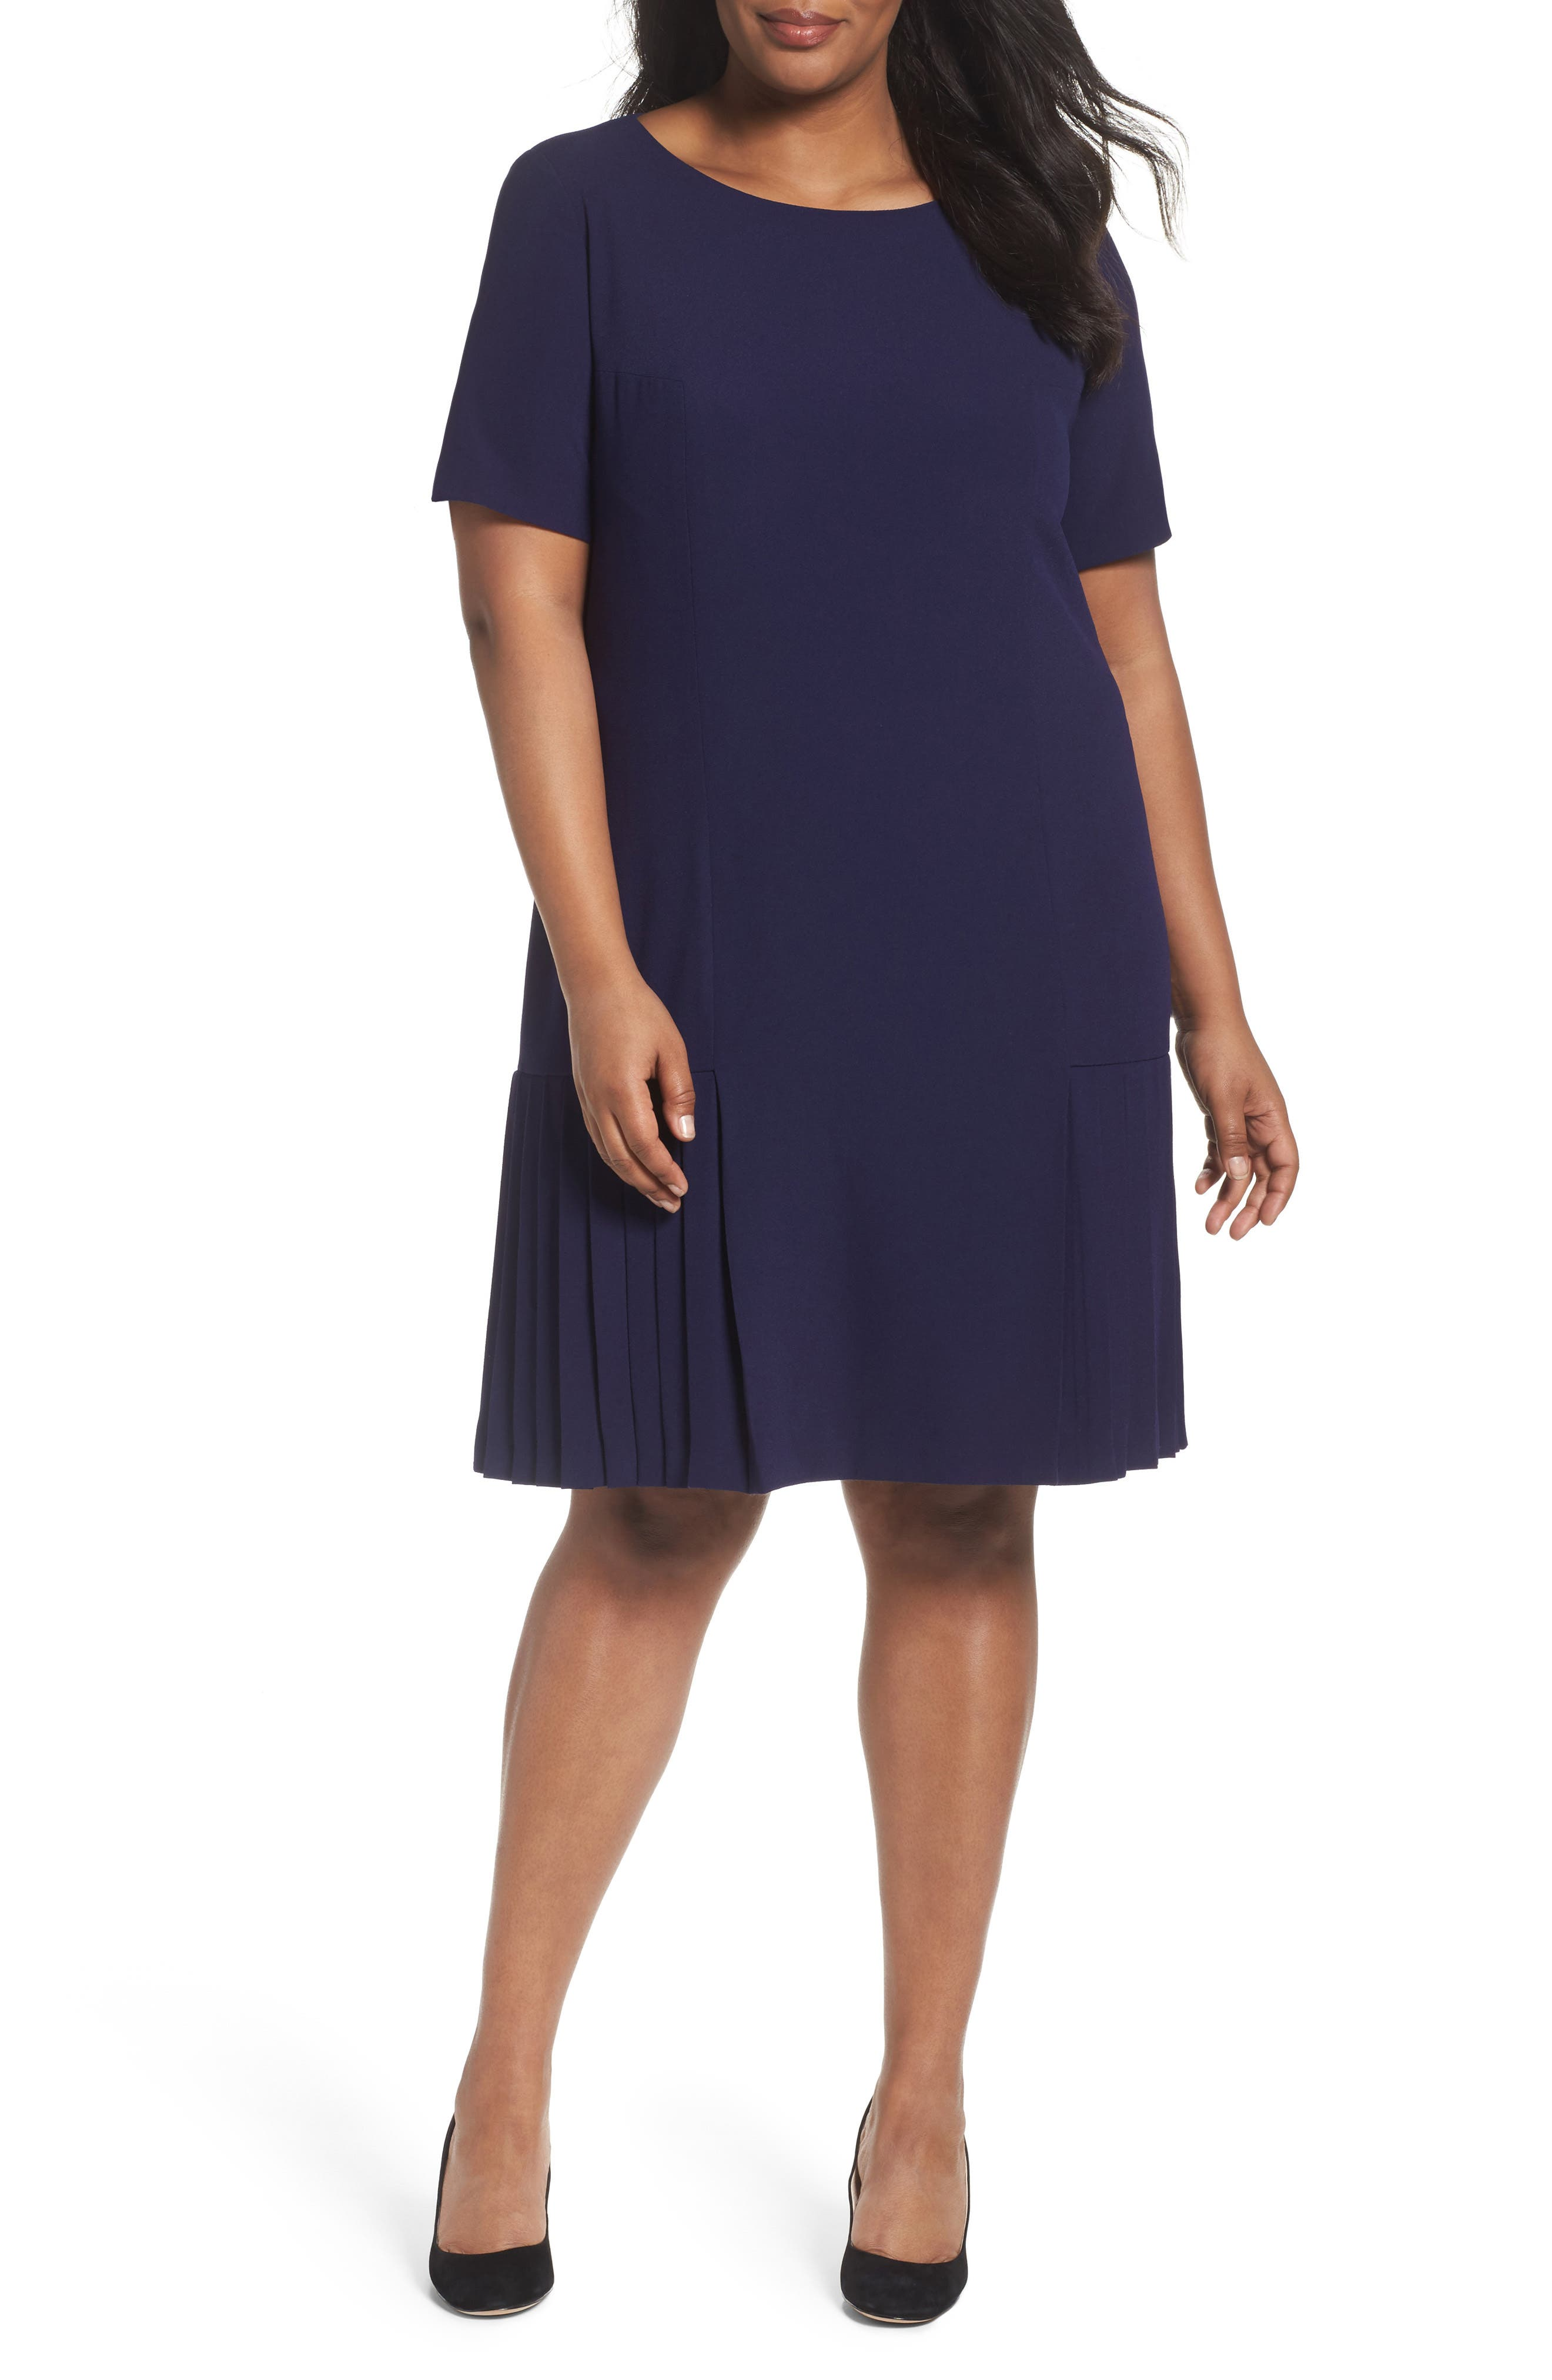 Tahari Pleat Crepe A-Line Dress (Plus Size)